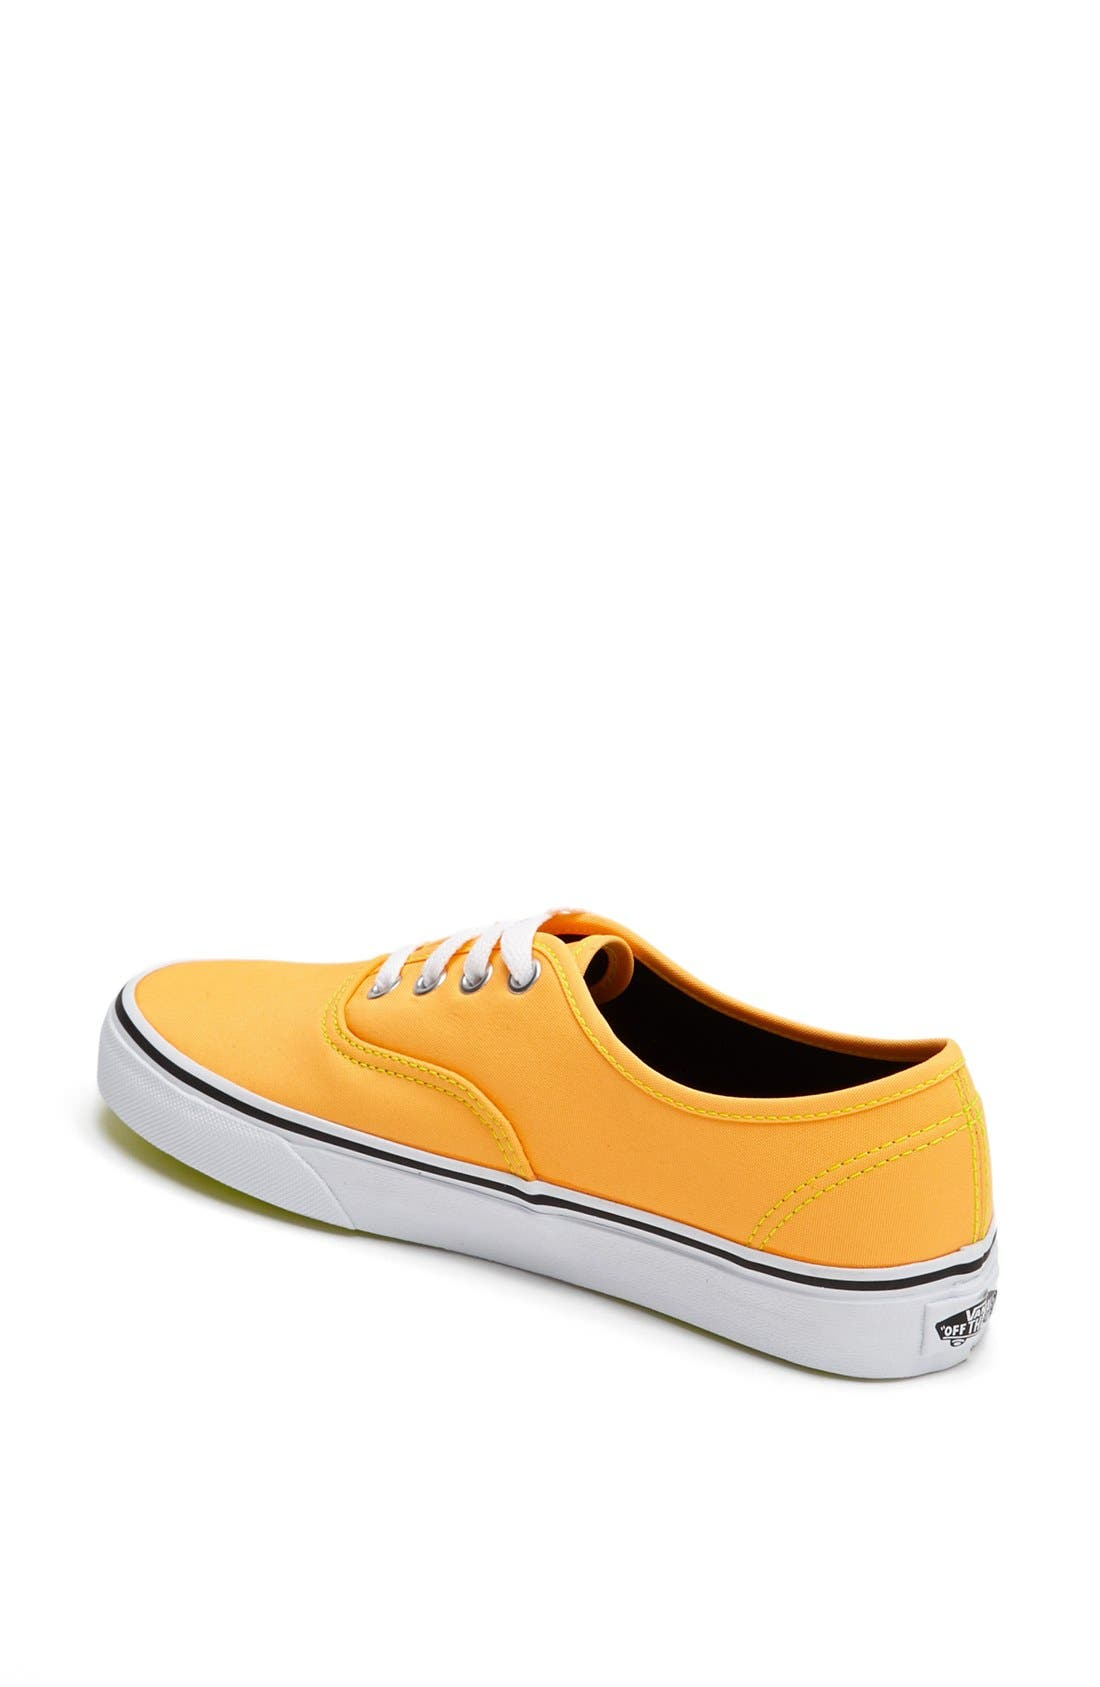 Alternate Image 2  - Vans 'Authentic' Neon Sneaker (Women)